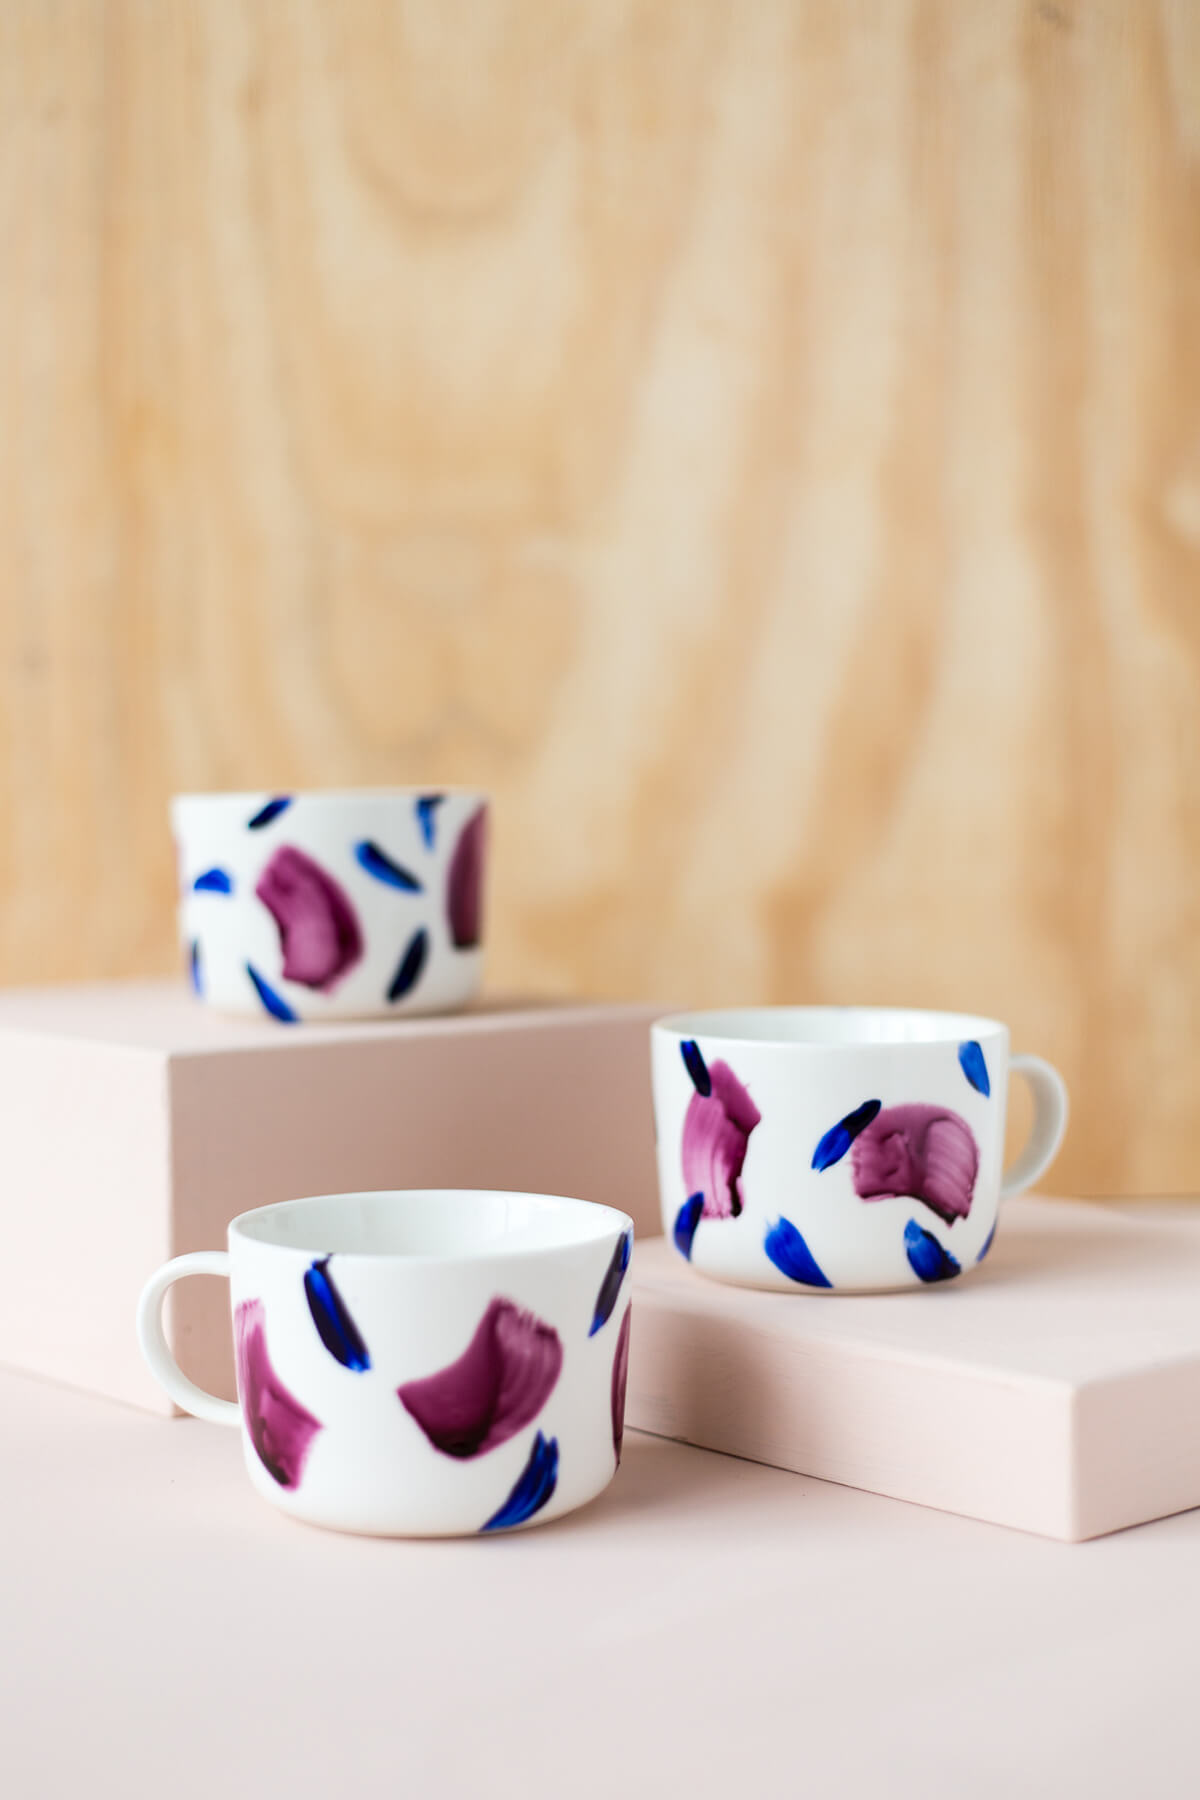 Stylish and Modern Patterned Mugs